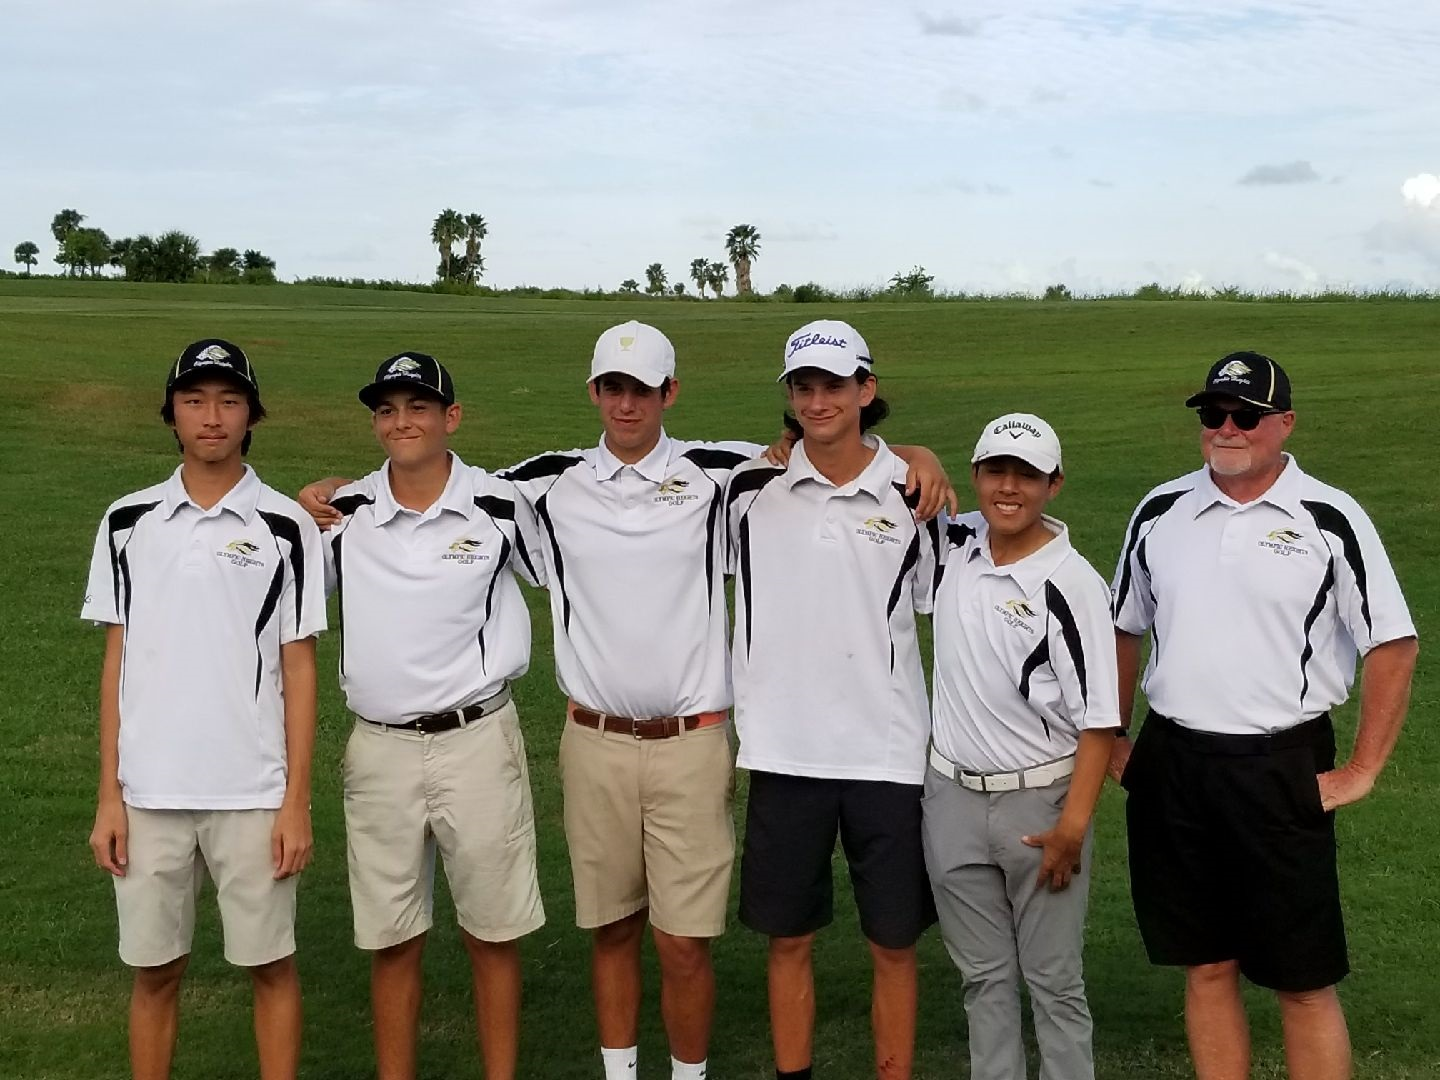 Three members of the OH Boys Golf Team were named to the All-Conference team: Justin Cao (far left), Matthew Hicks (second from left), and Brooks Lamb (fourth from left). They are pictured with Oliver Kiely (third from left), Christian Ayala (fifth from left), and Coach David Keithley (far right).